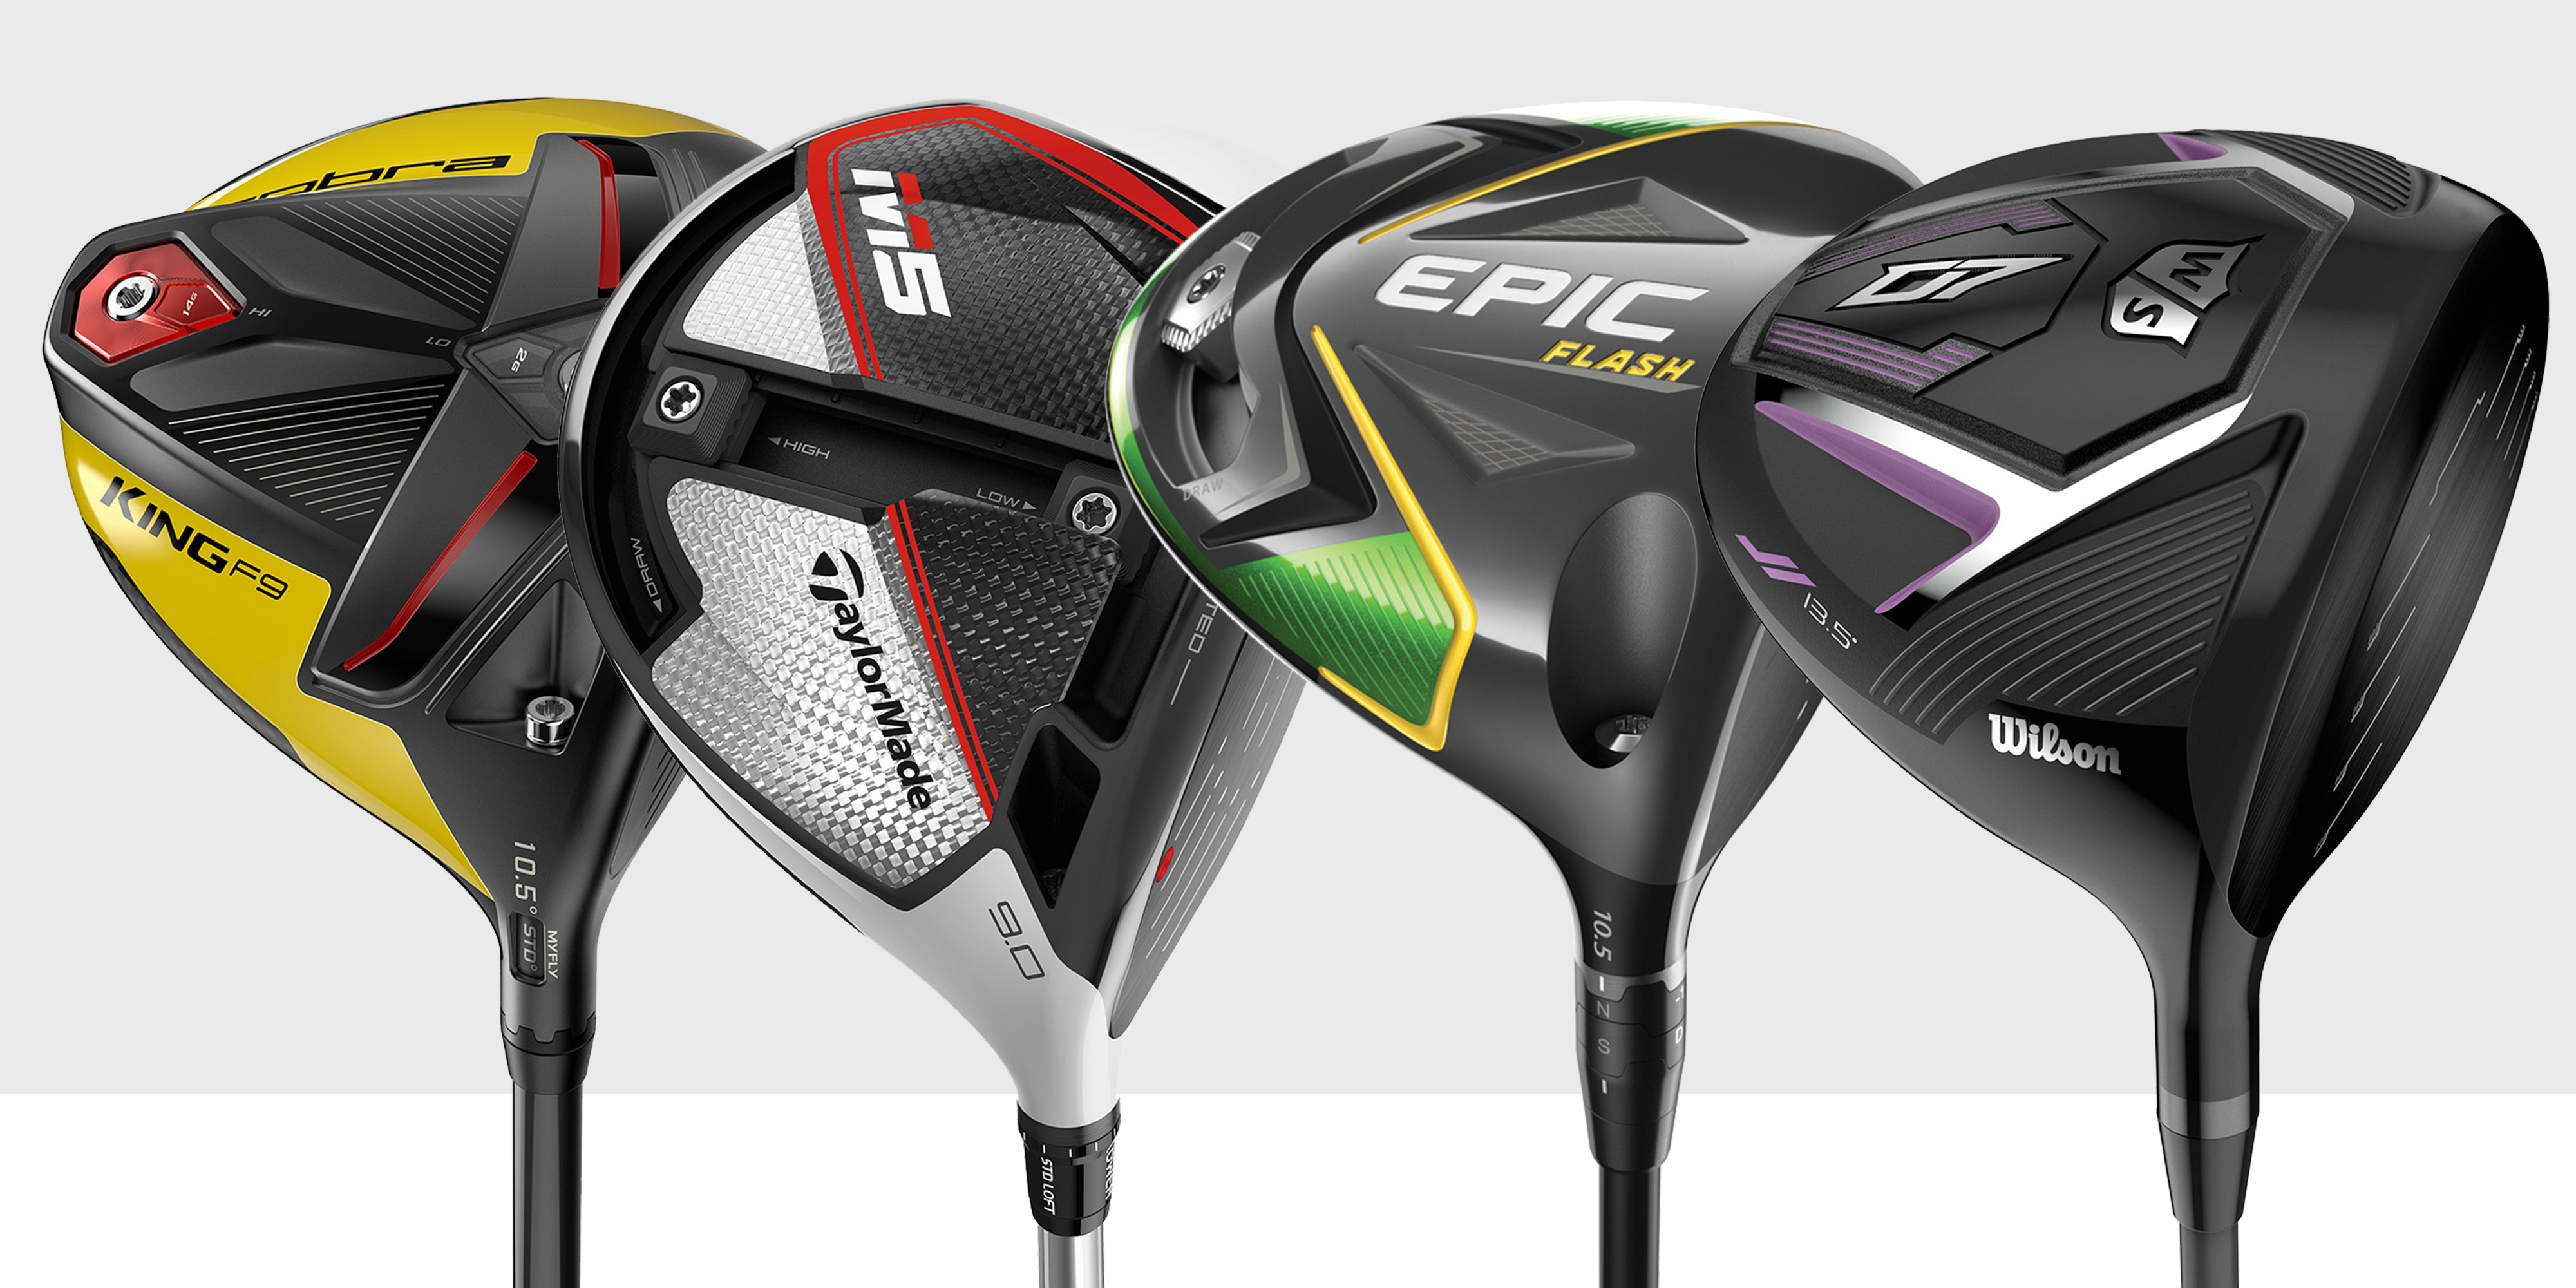 Enter the battle of the brands at American Golf